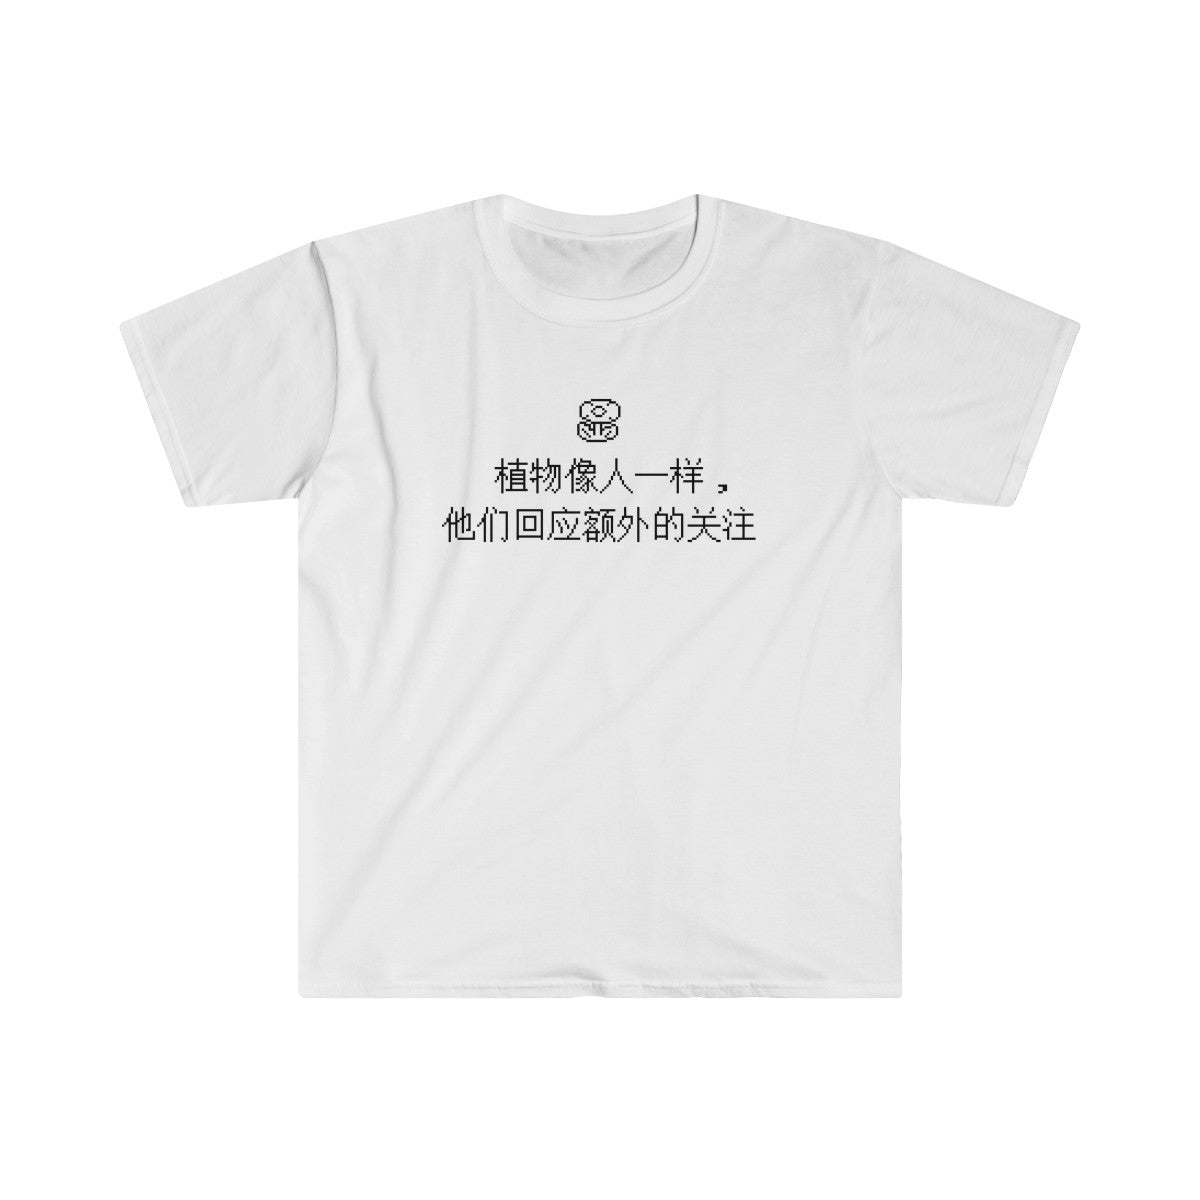 Plant Care Chinese Men's Fitted Short Sleeve Tee